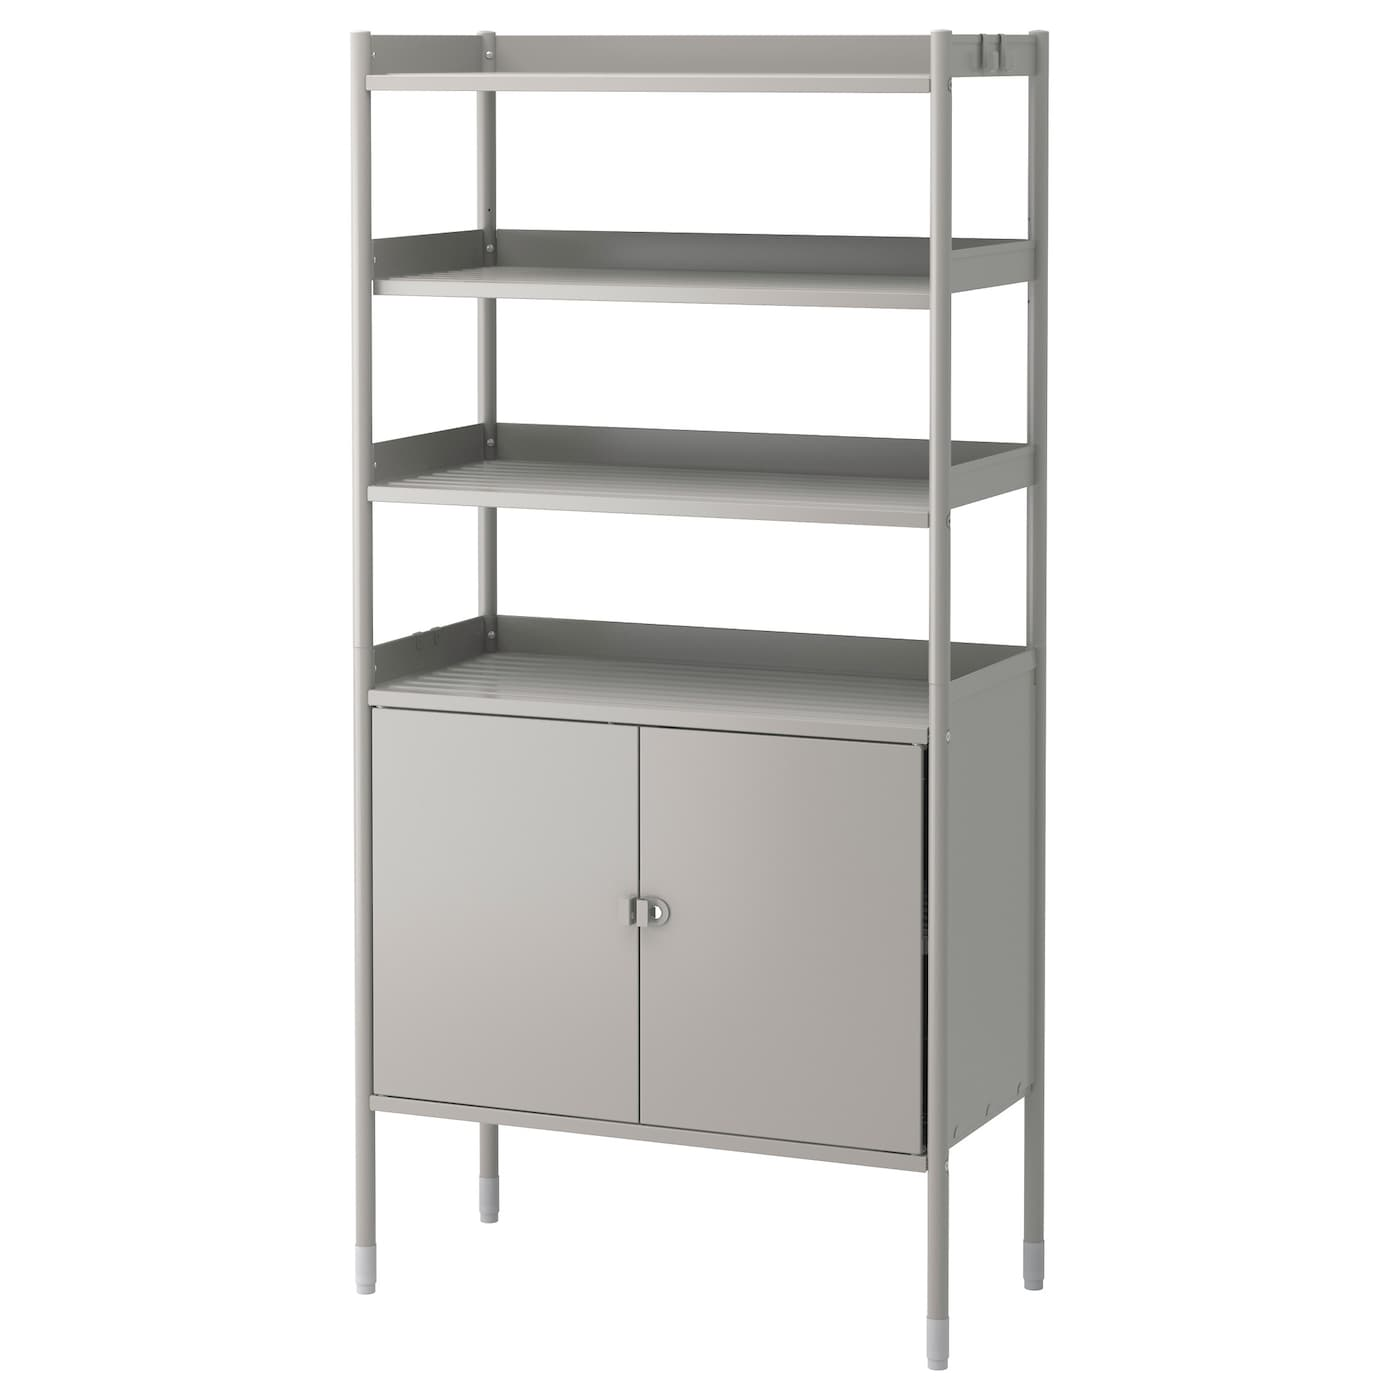 hind cabinet w shelving unit in outdoor grey 78x158 cm ikea. Black Bedroom Furniture Sets. Home Design Ideas